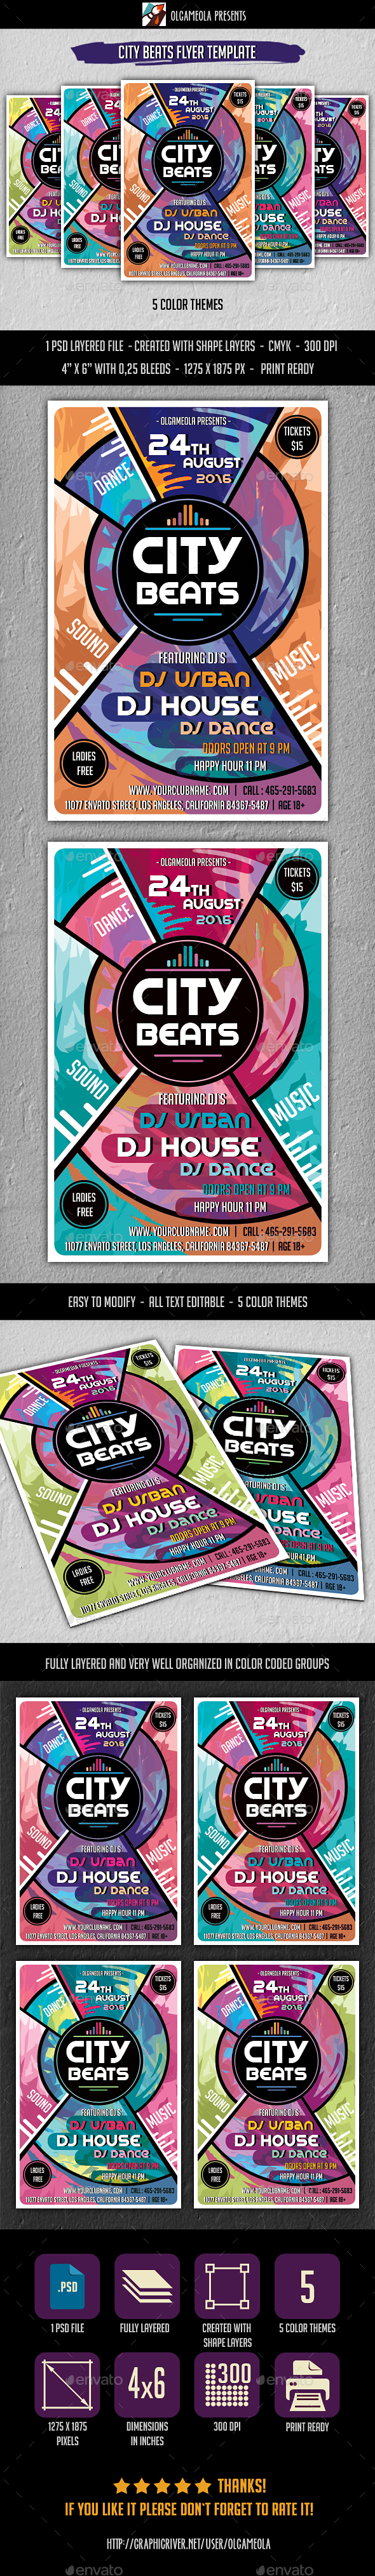 City Beats Flyer Template - Clubs & Parties Events